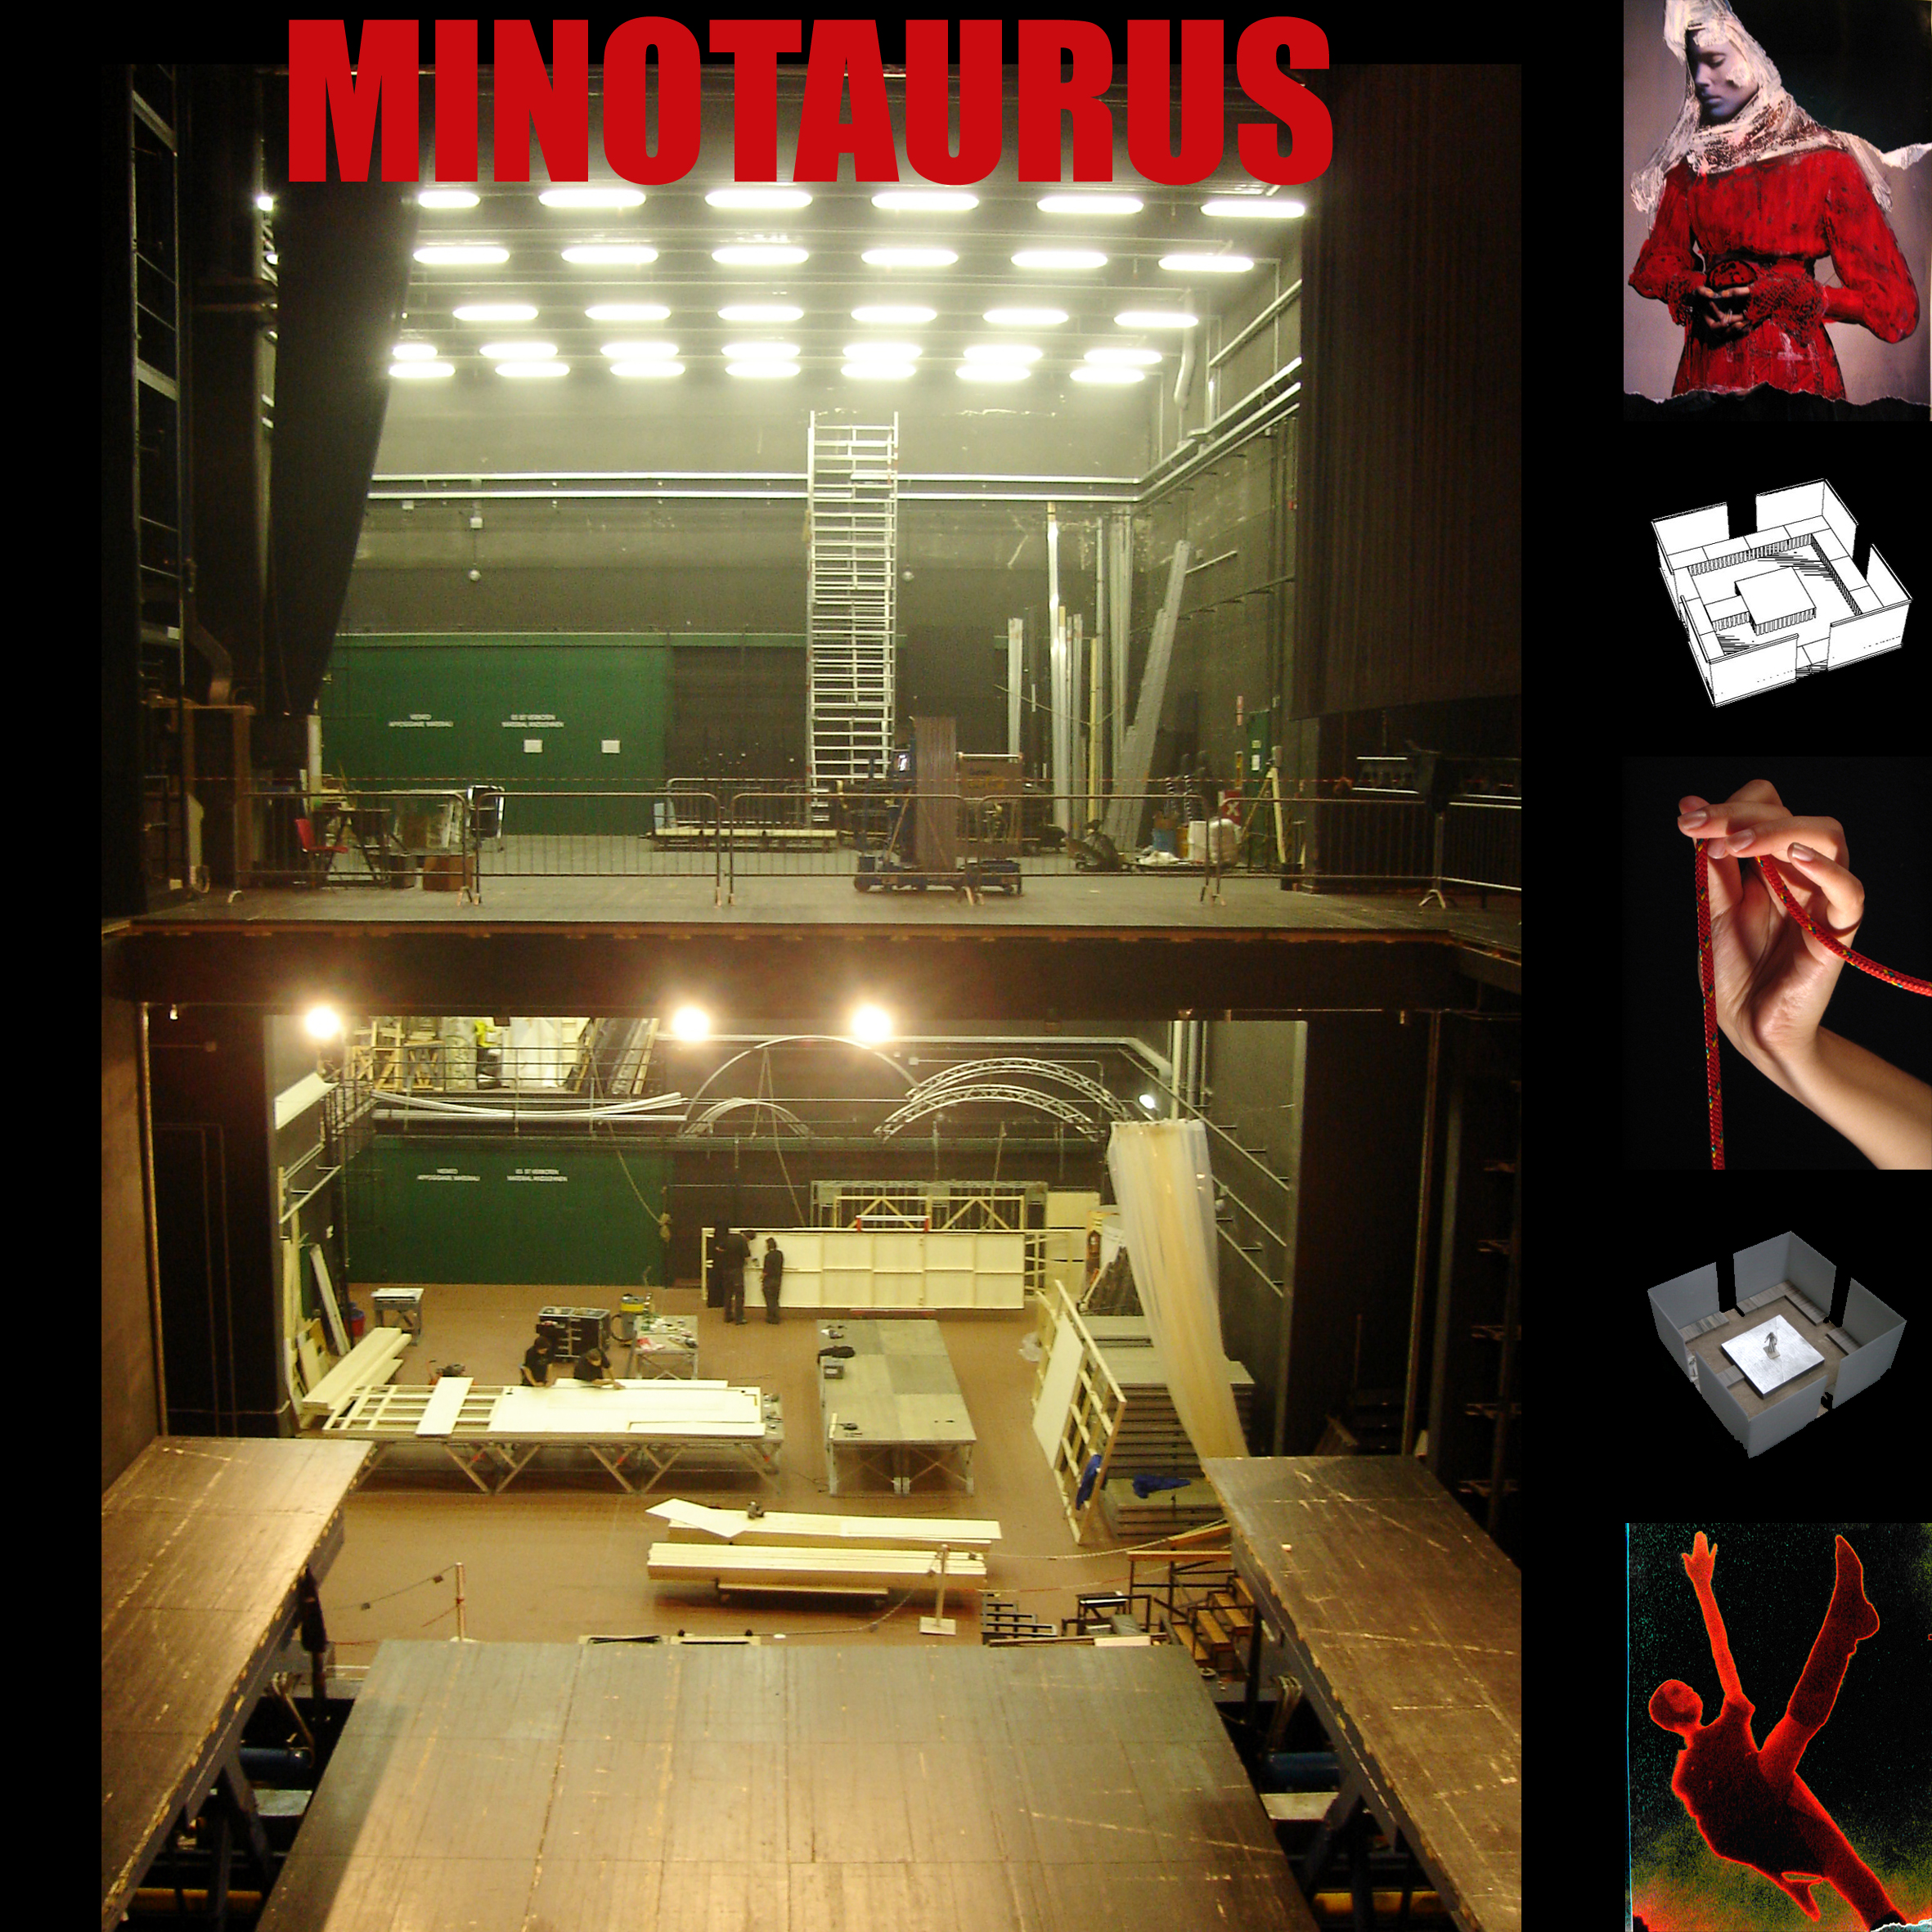 Mnemosyne - Minotaurus - directed, set and costuma CRISTINA ALAIMOworkshop  for